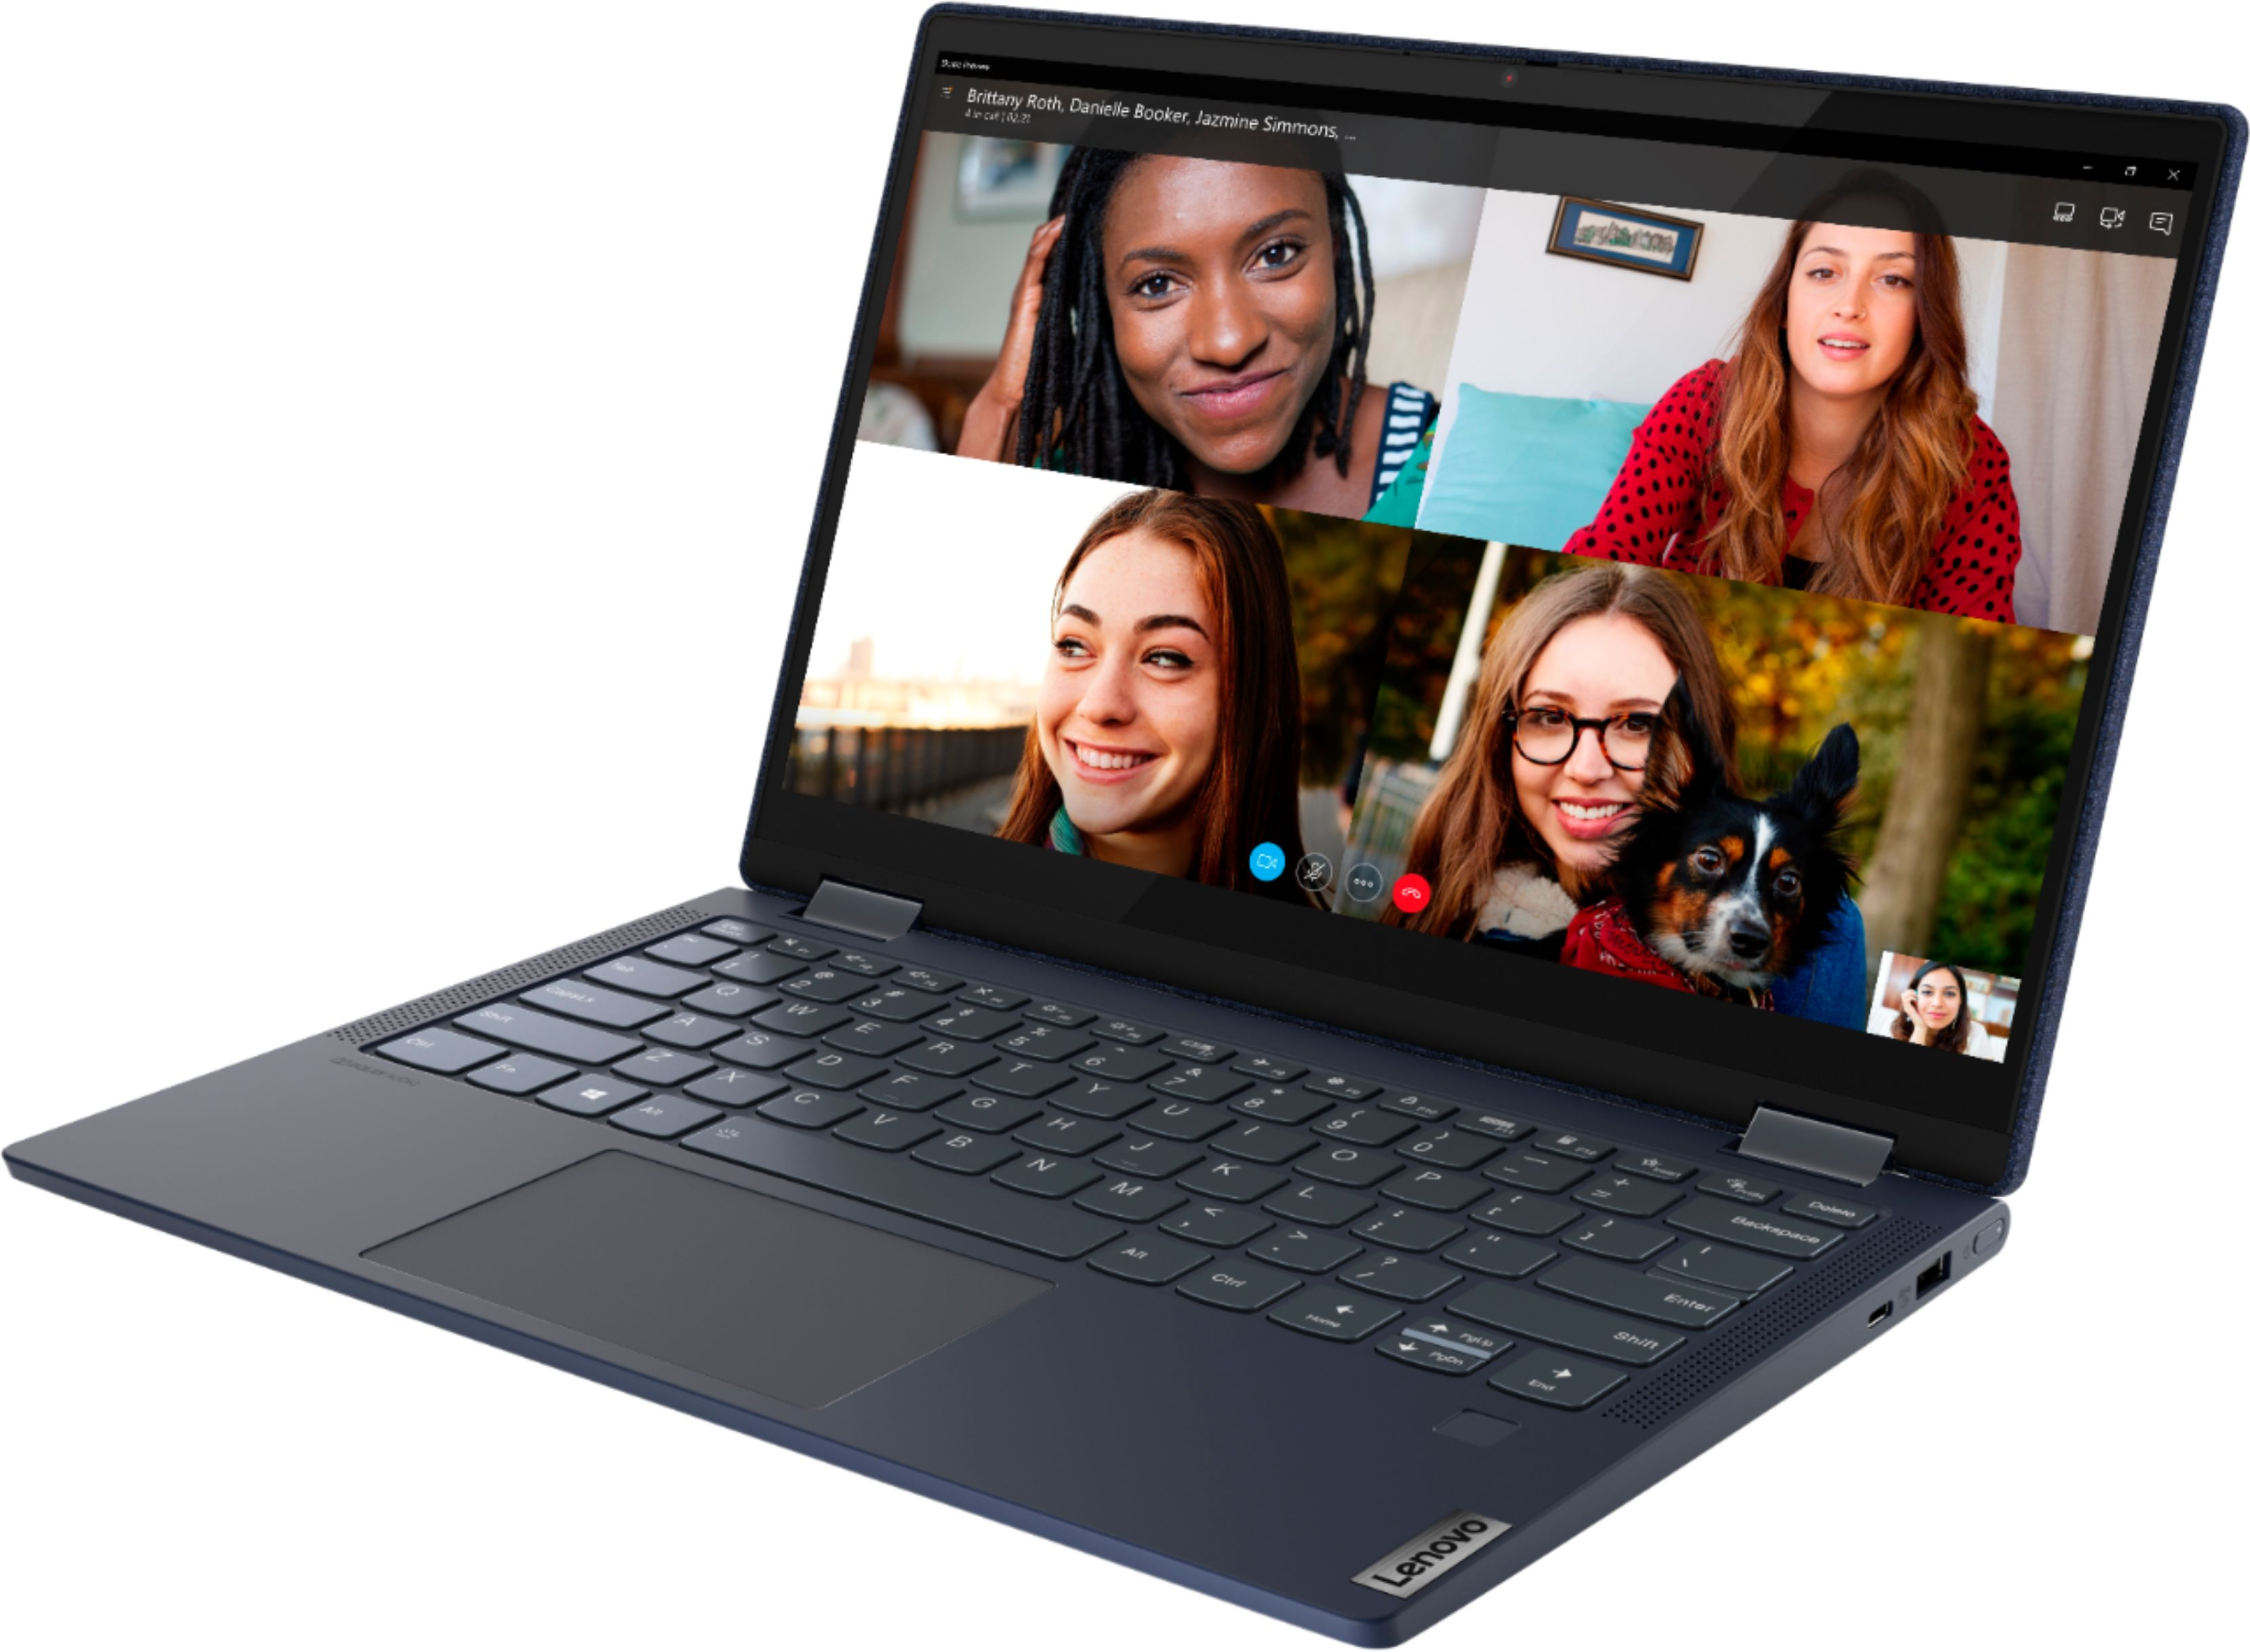 """Alt View Zoom 1. Lenovo Yoga 6 13 2-in-1 13.3"""" Touch Screen Laptop - AMD Ryzen 5 - 8GB Memory - 256GB SSD - Abyss Blue Fabric Cover."""